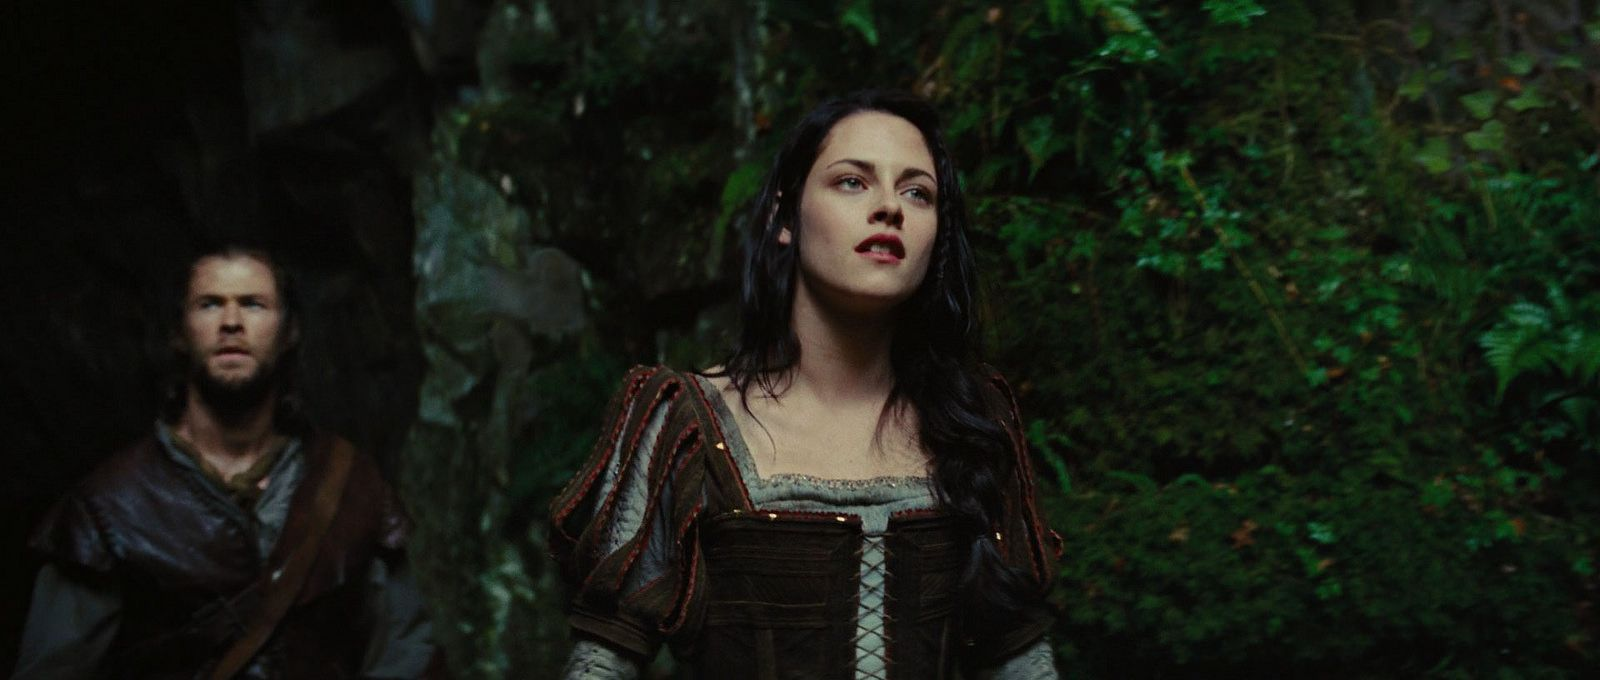 Snow-White-and-The-Huntsman-image-snow-white-and-the-huntsman-36290268-1920-816 | by roselina.stenz